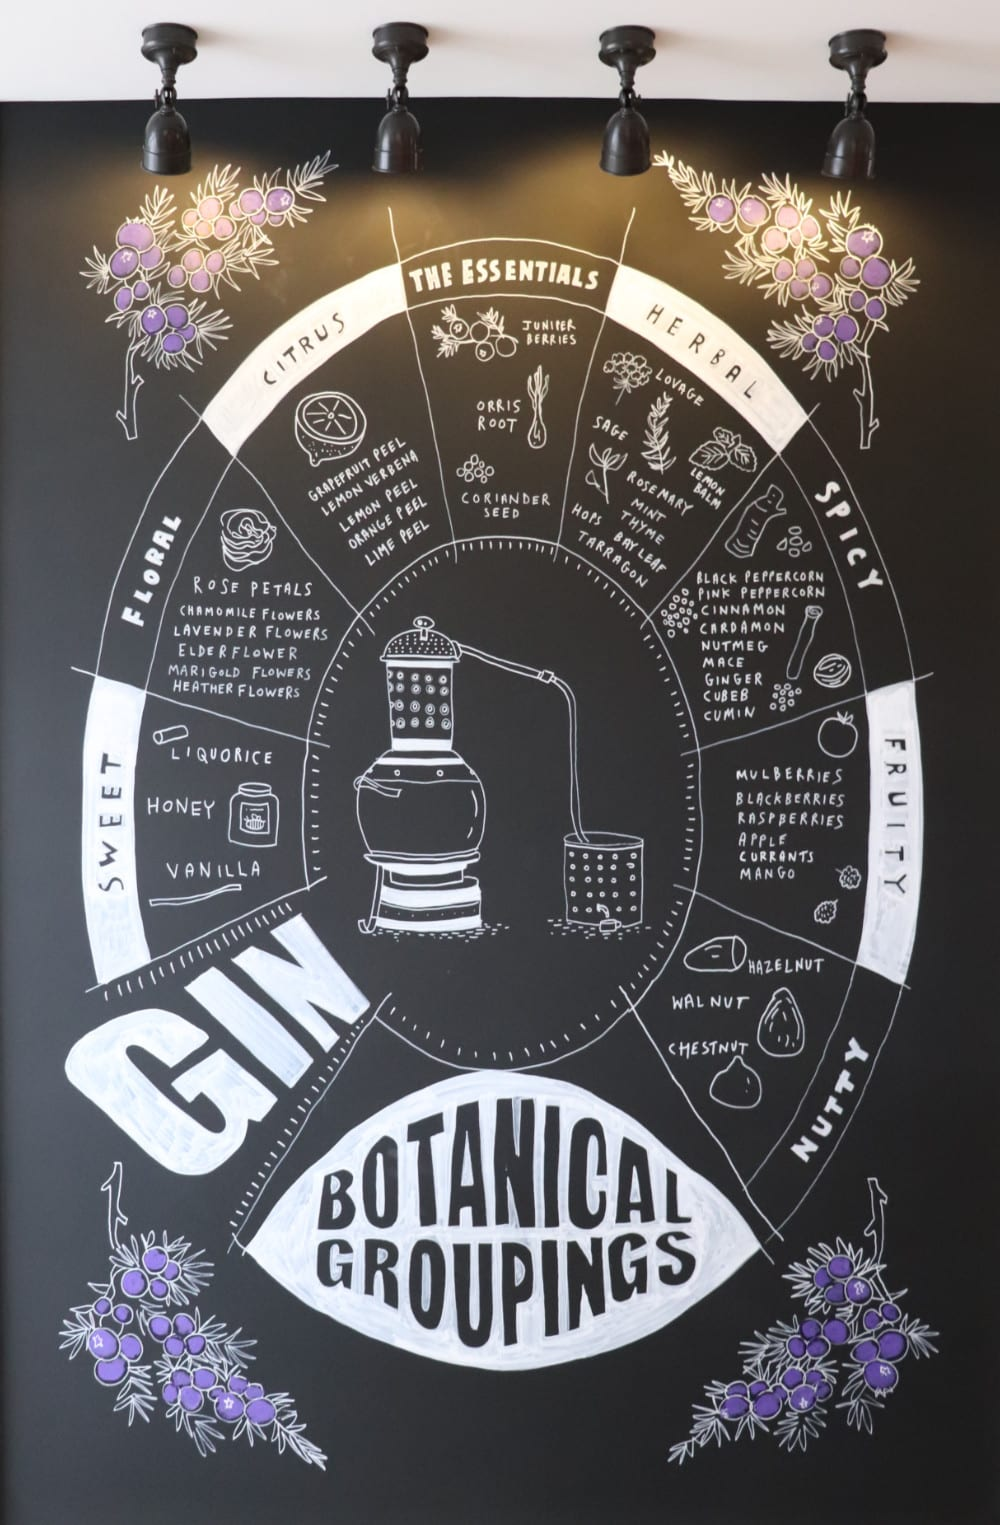 Shakespeare Distillery tour - Gin Botanicals